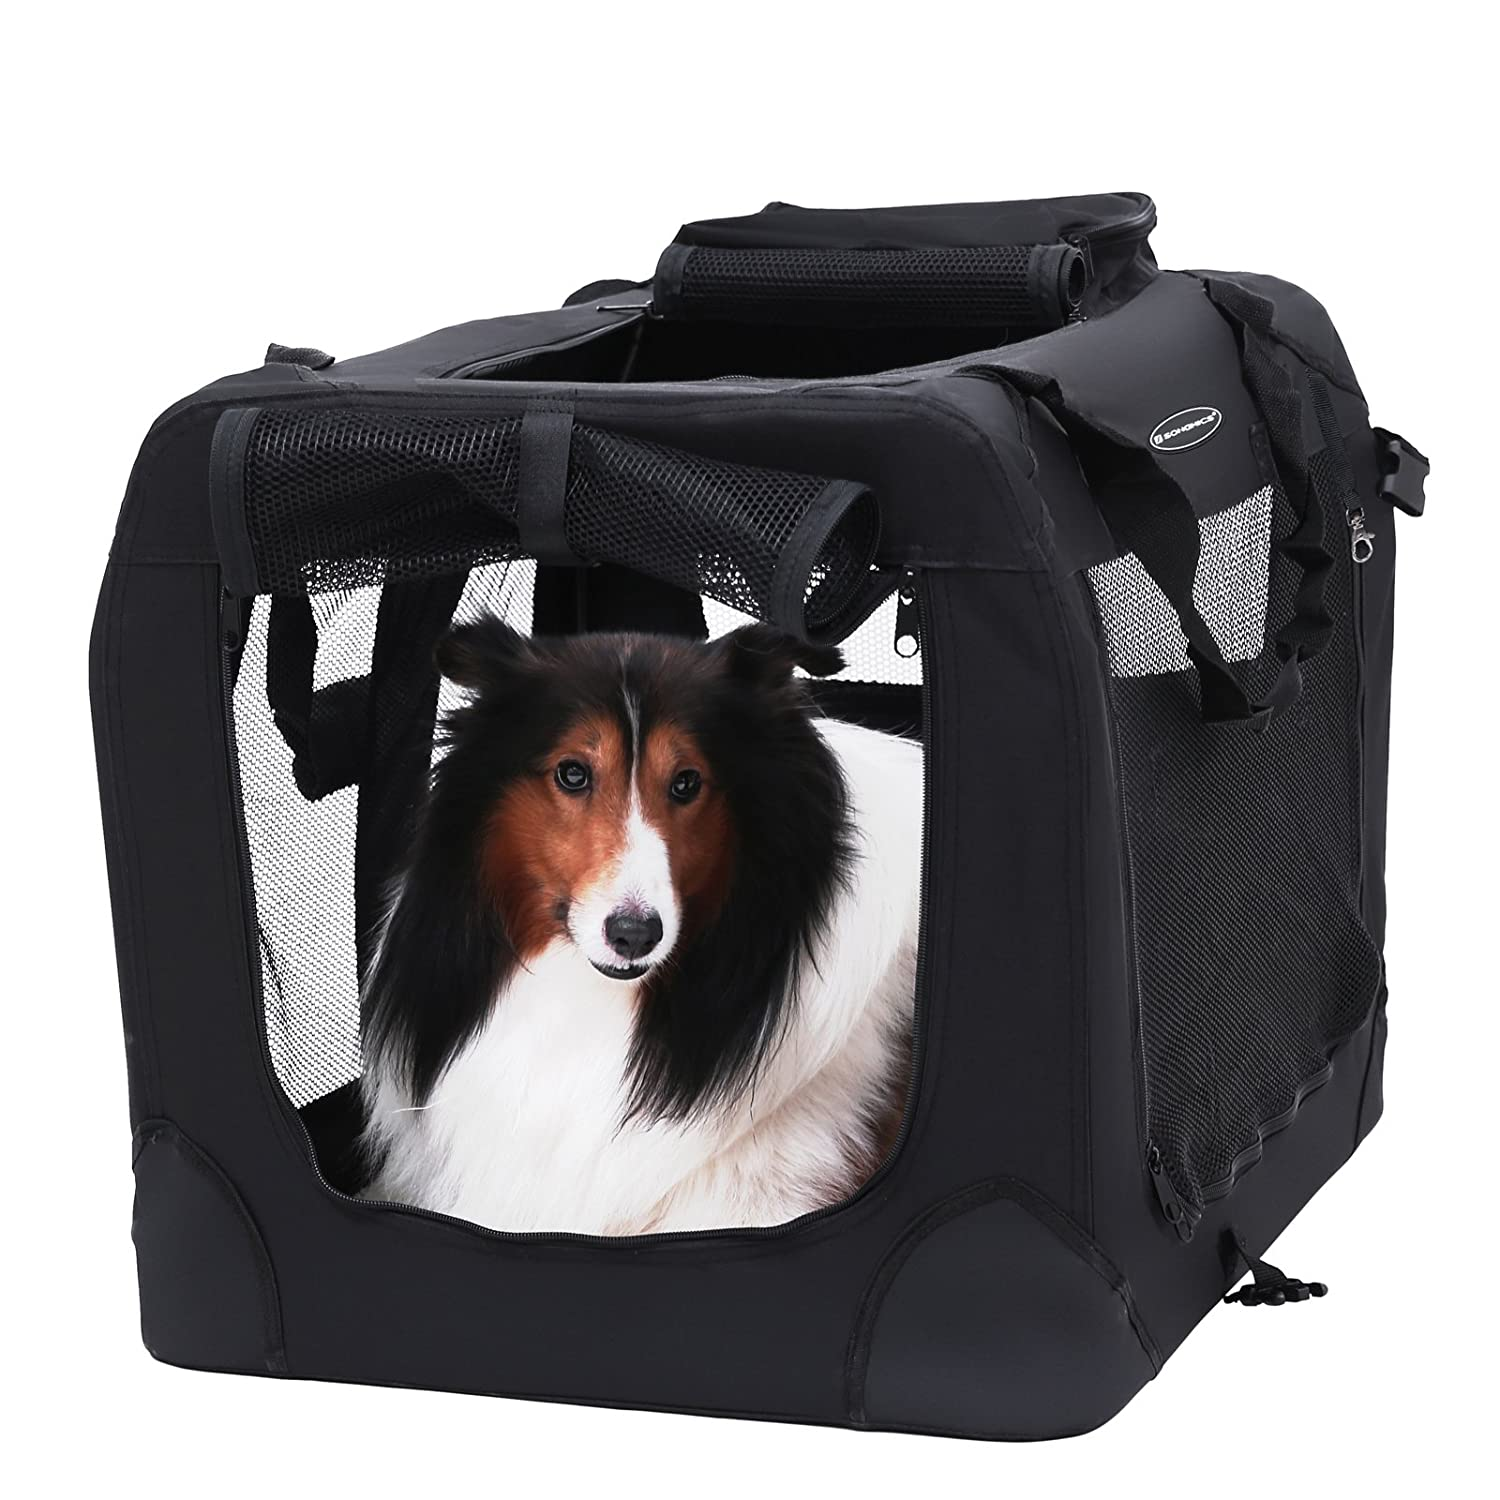 Songmics Folding Portable Soft Fabric Pet Carrier Black - XXL 91 x 63 x 63 cm PDC90H